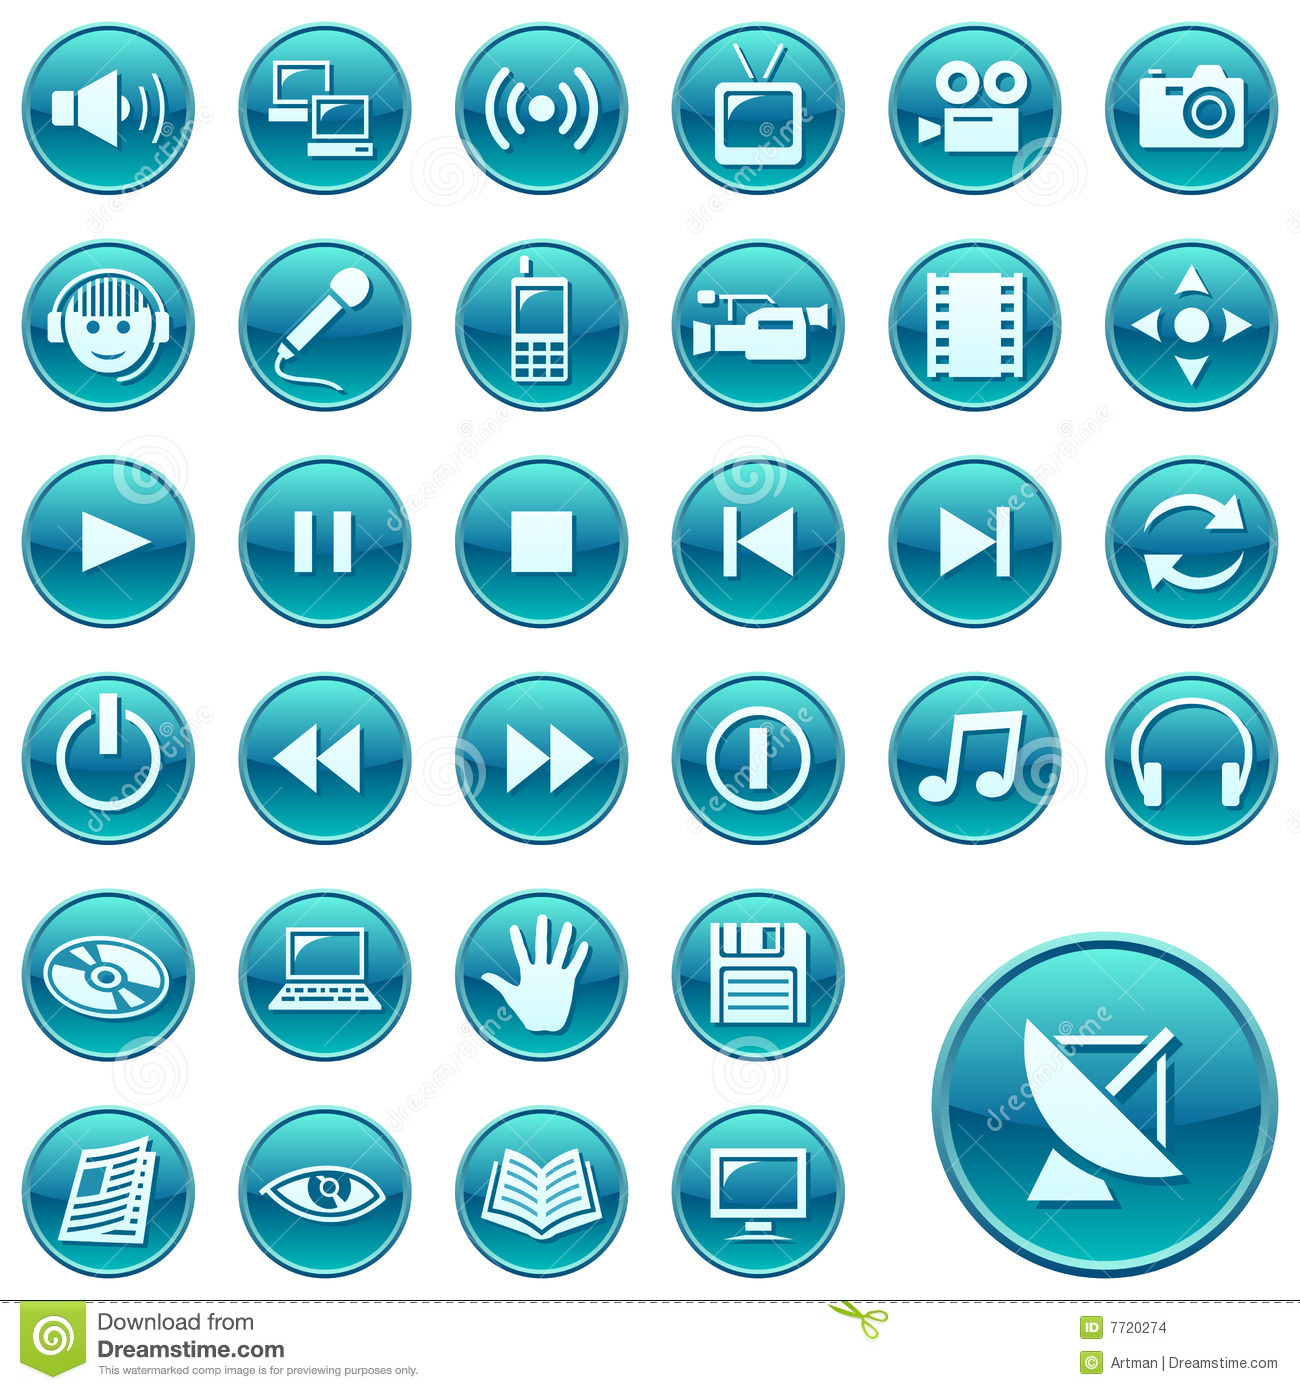 Abstract Social Media Watercolor Icons Set: Round Web Icons / Buttons 3 Stock Images